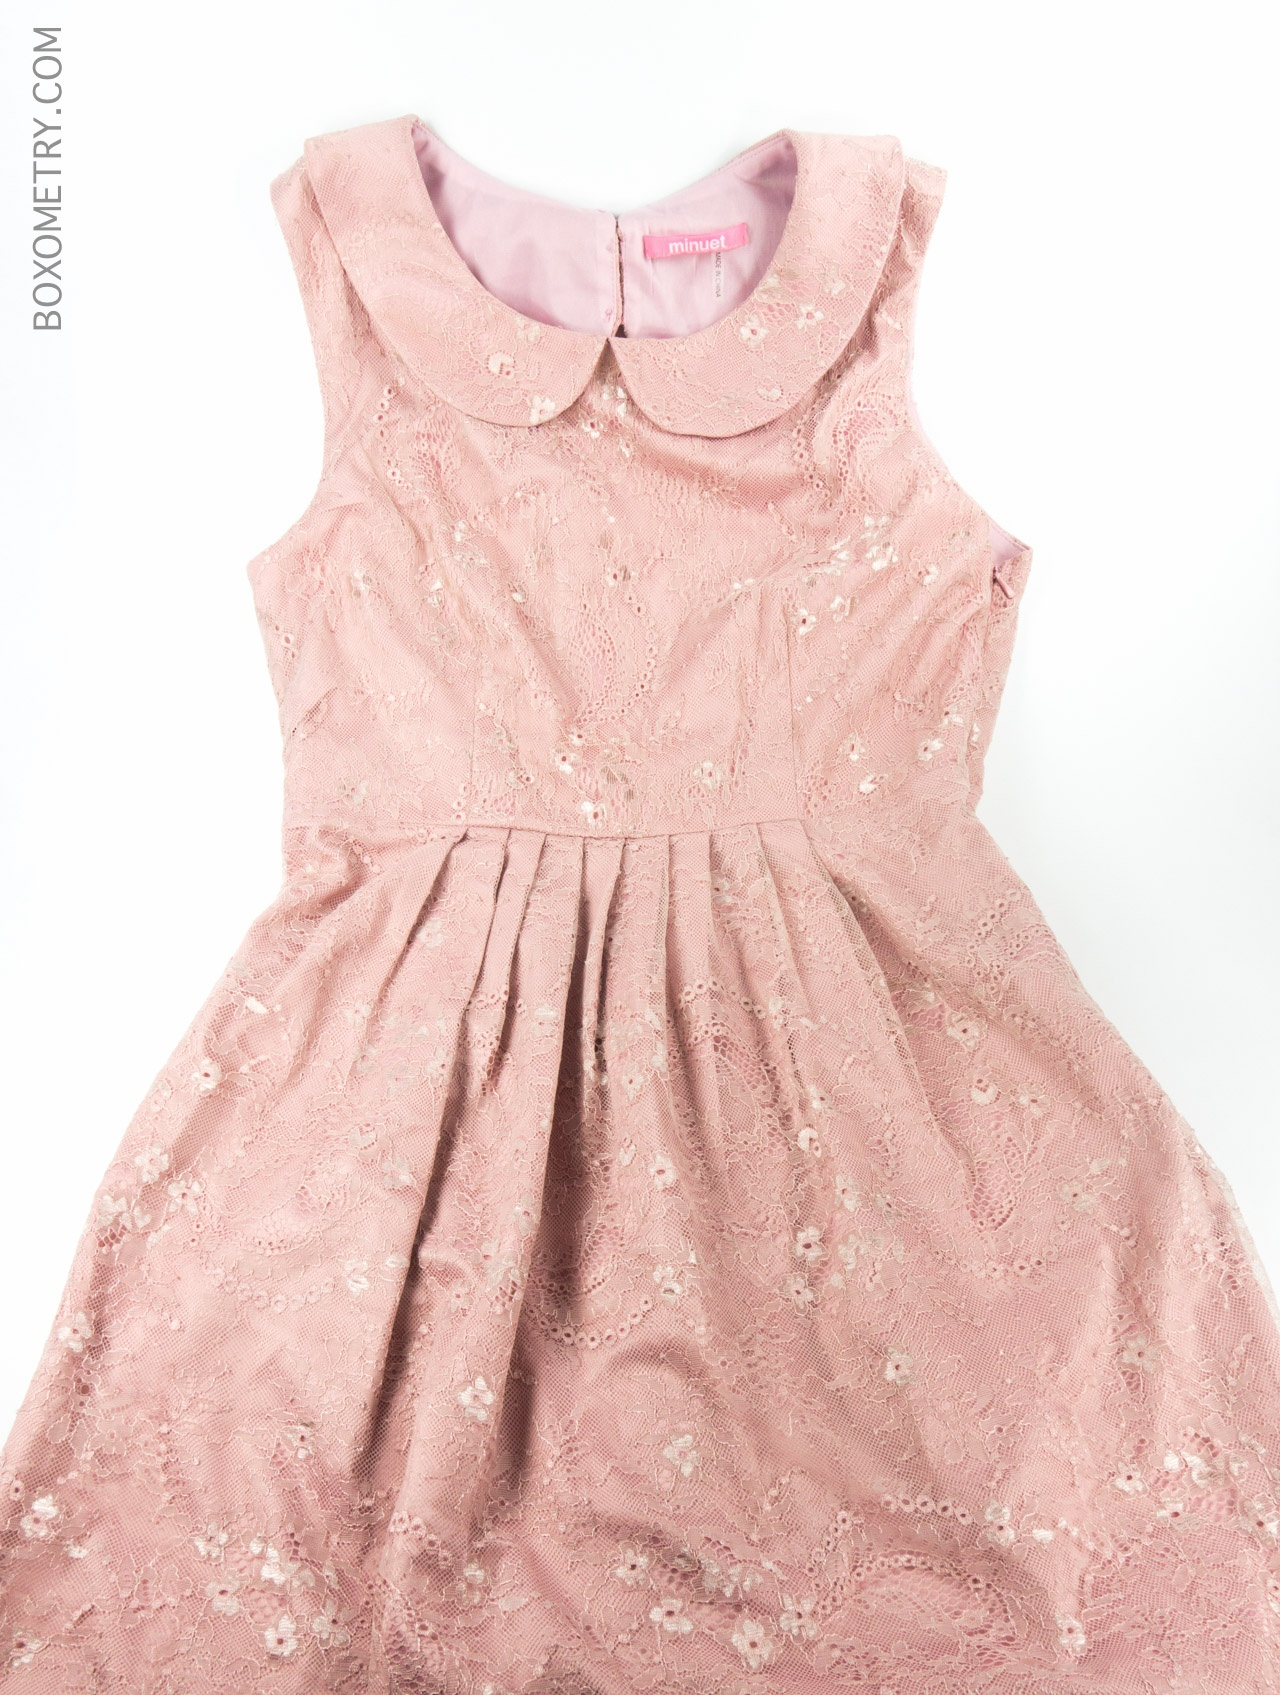 Boxometry Kairos October 2015 Review - Hand Selected Dress (TheNiftyThriftyFox)